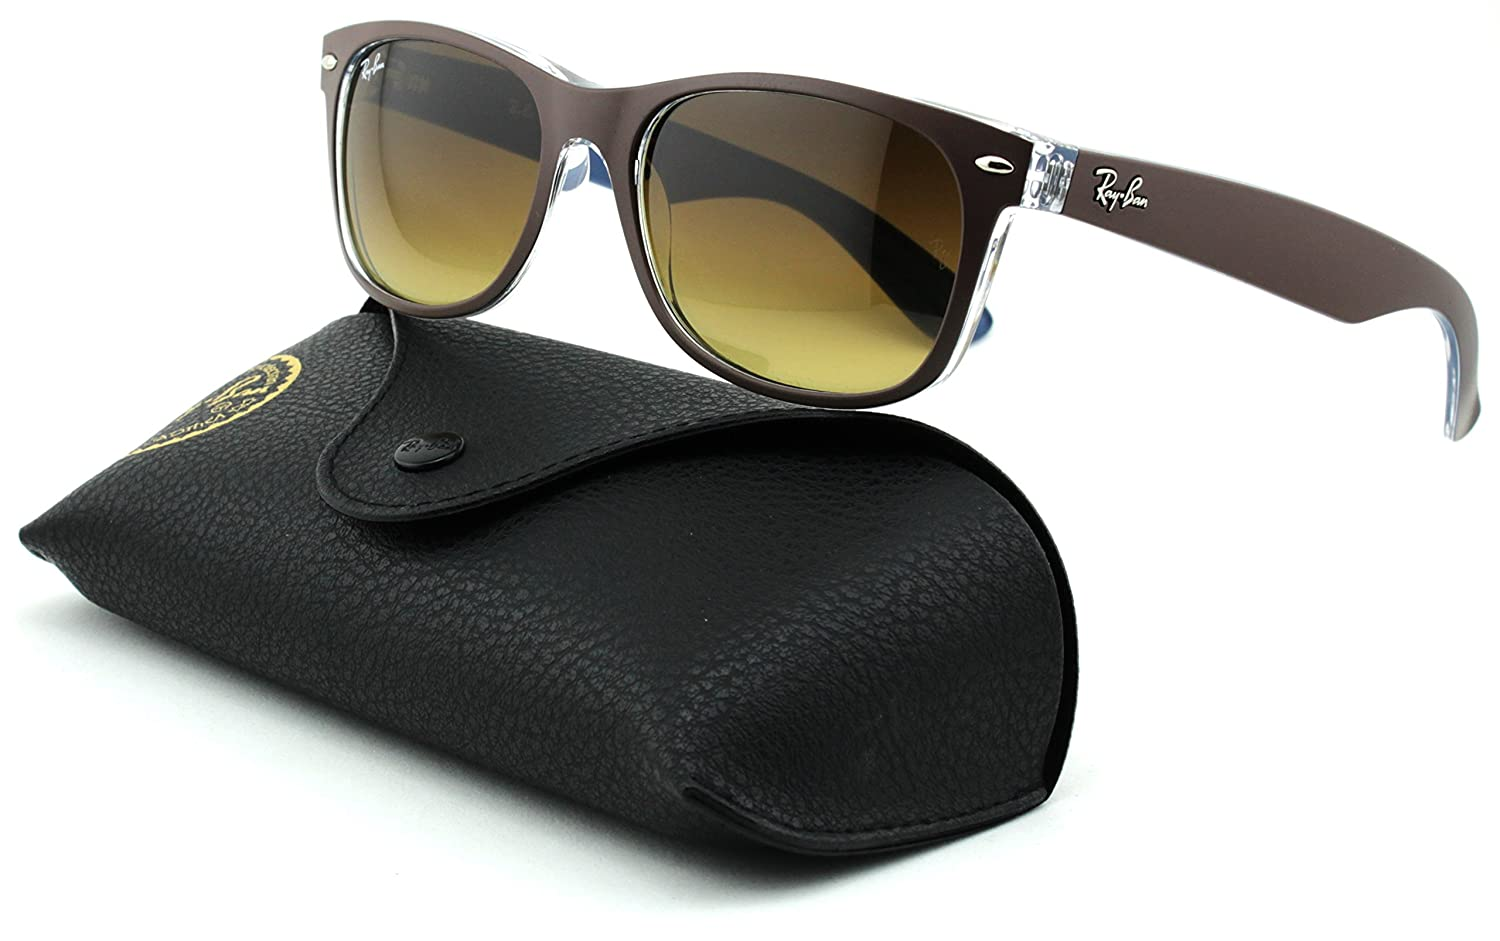 5d8288dd2 Amazon.com: Ray-Ban RB2132 New Wayfarer Gradient Unisex Sunglasses (Matte  Chocolate on Blue/Light Brown Gradient Dark Brown 618985, 52): Clothing